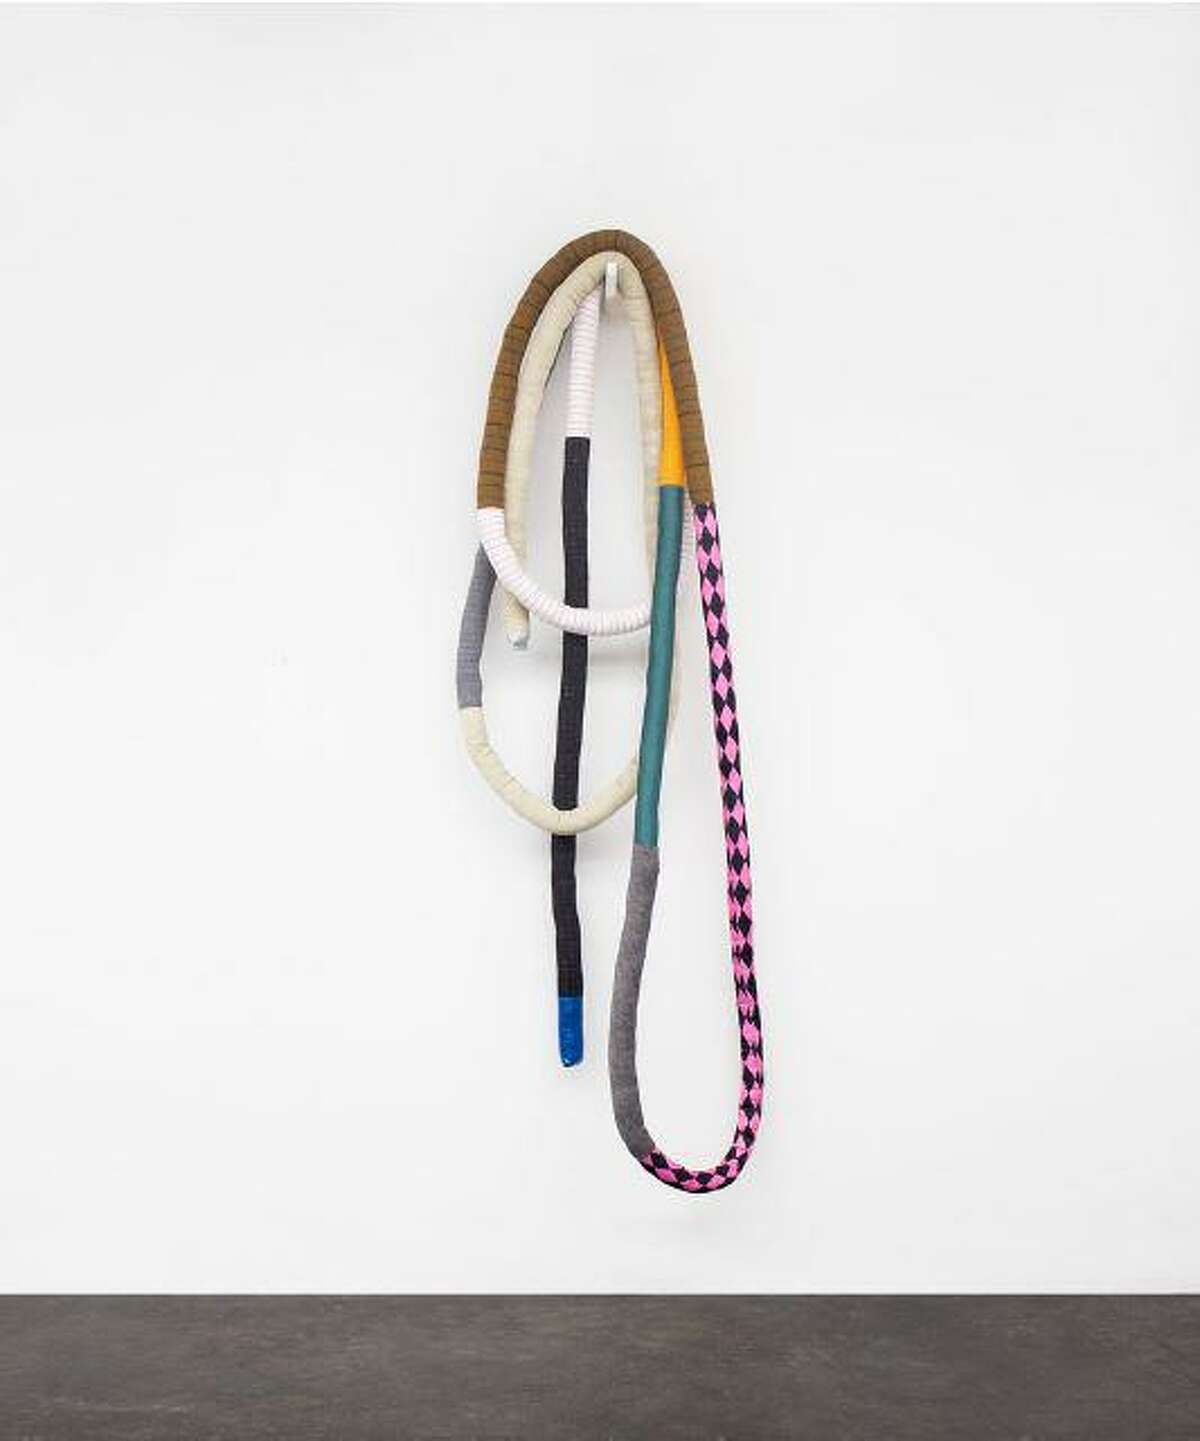 """""""A WORLD AWAY, State of Limbo"""" is on view in Neil Fortune's show """"Colorful ribs and guts of Adam,"""" at Gray Contemporary through Nov. 30."""